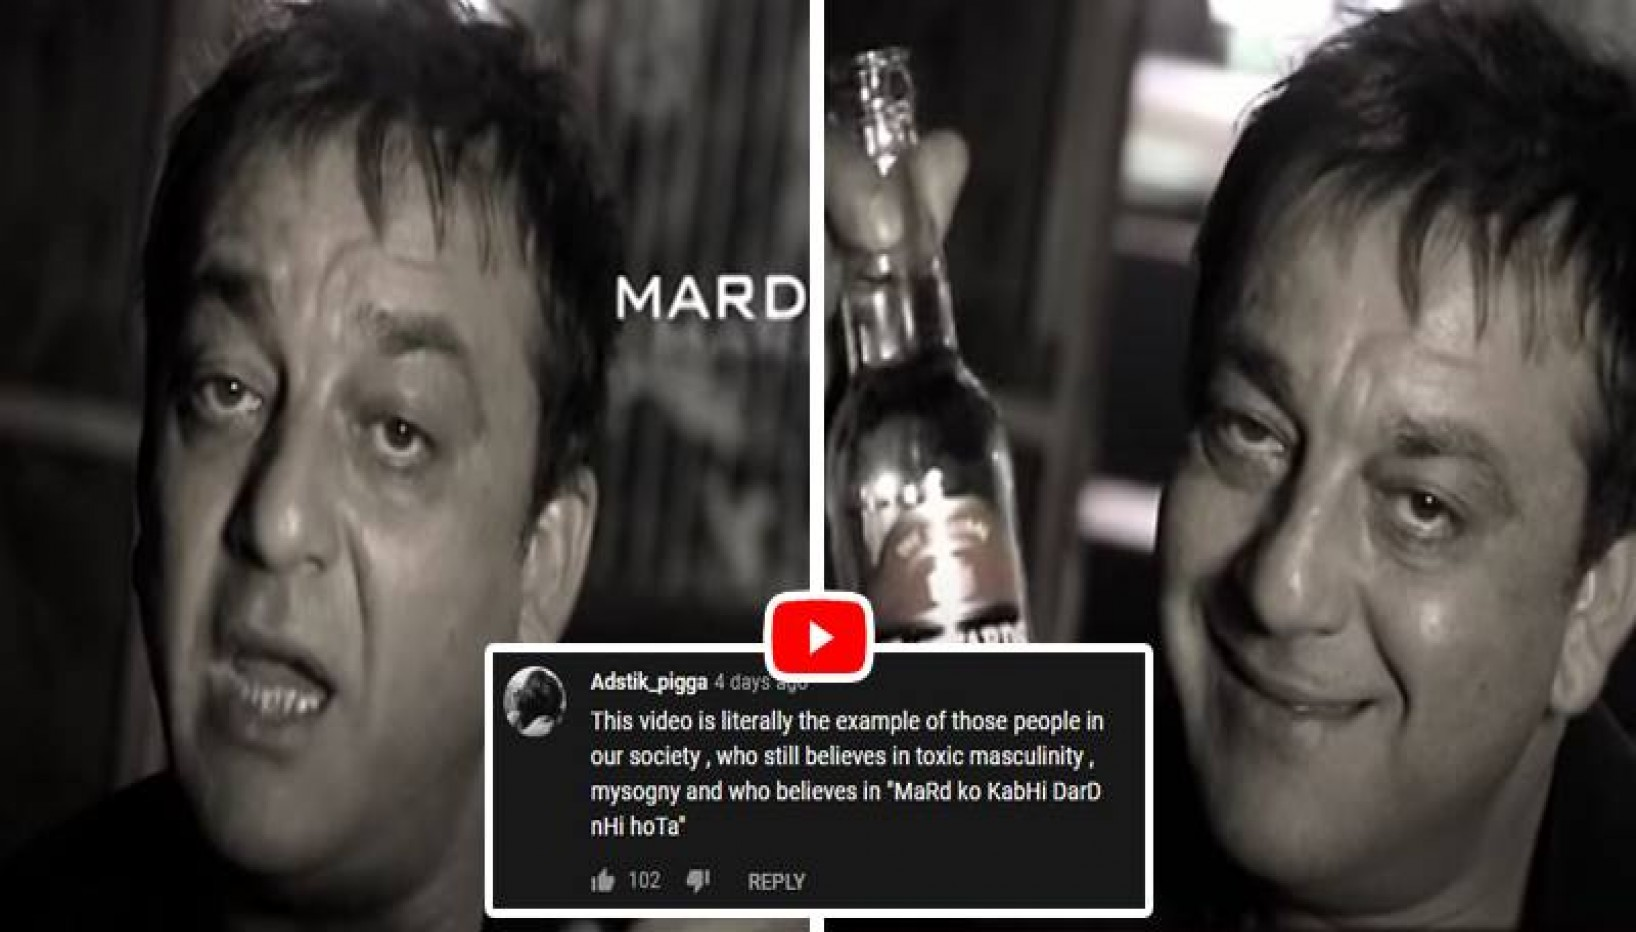 Sanjay Dutt's Old Ad About 'Manliness' Resurfaces And We Can't Help But Cringe At The Toxic Masculinity